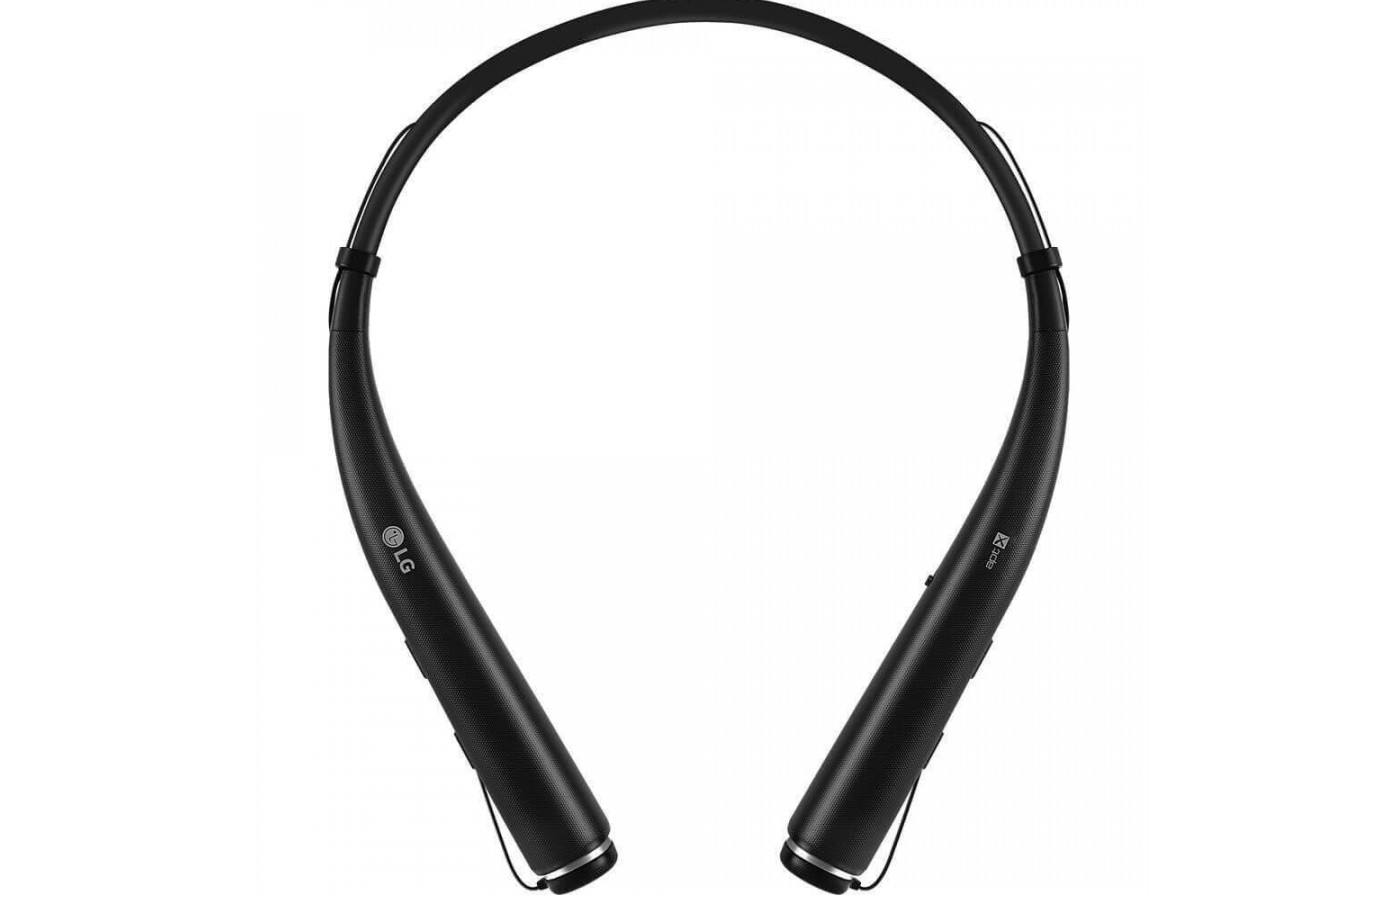 The The LG Tone Pro HBS-780 headphones comes with an extra set of ear tips